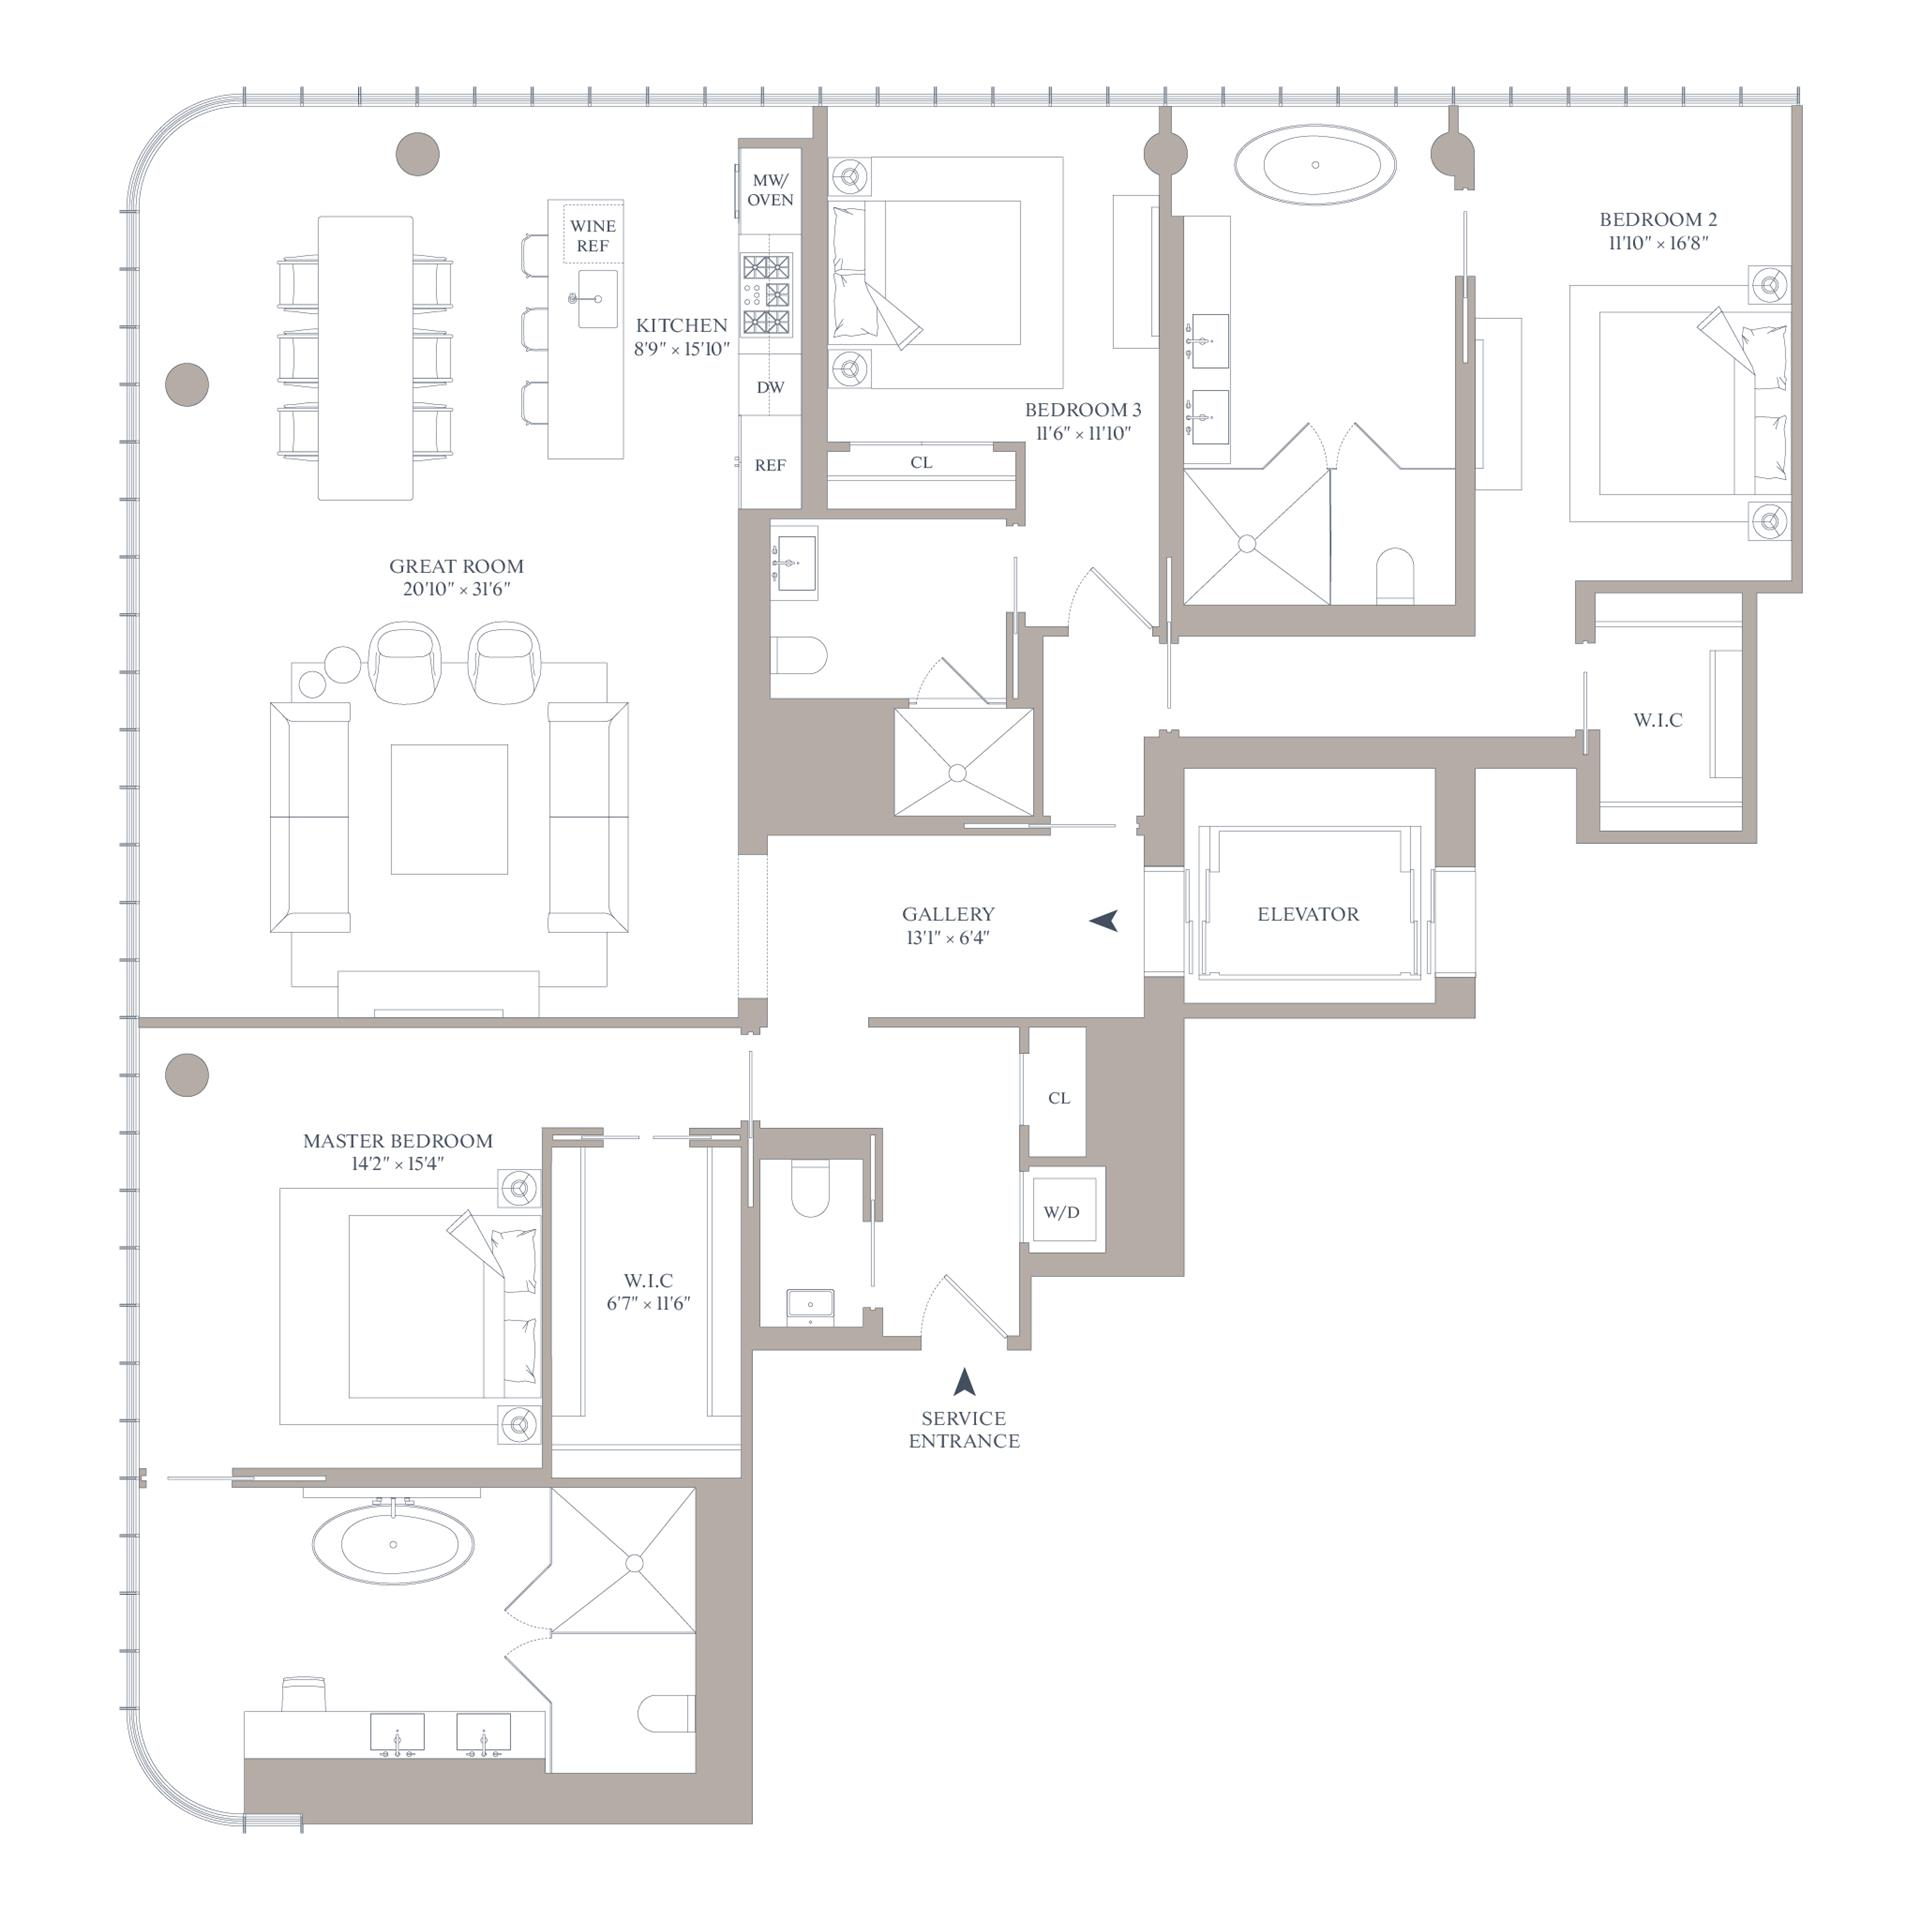 Floor plan of 565 Broome St, N23A - SoHo - Nolita, New York